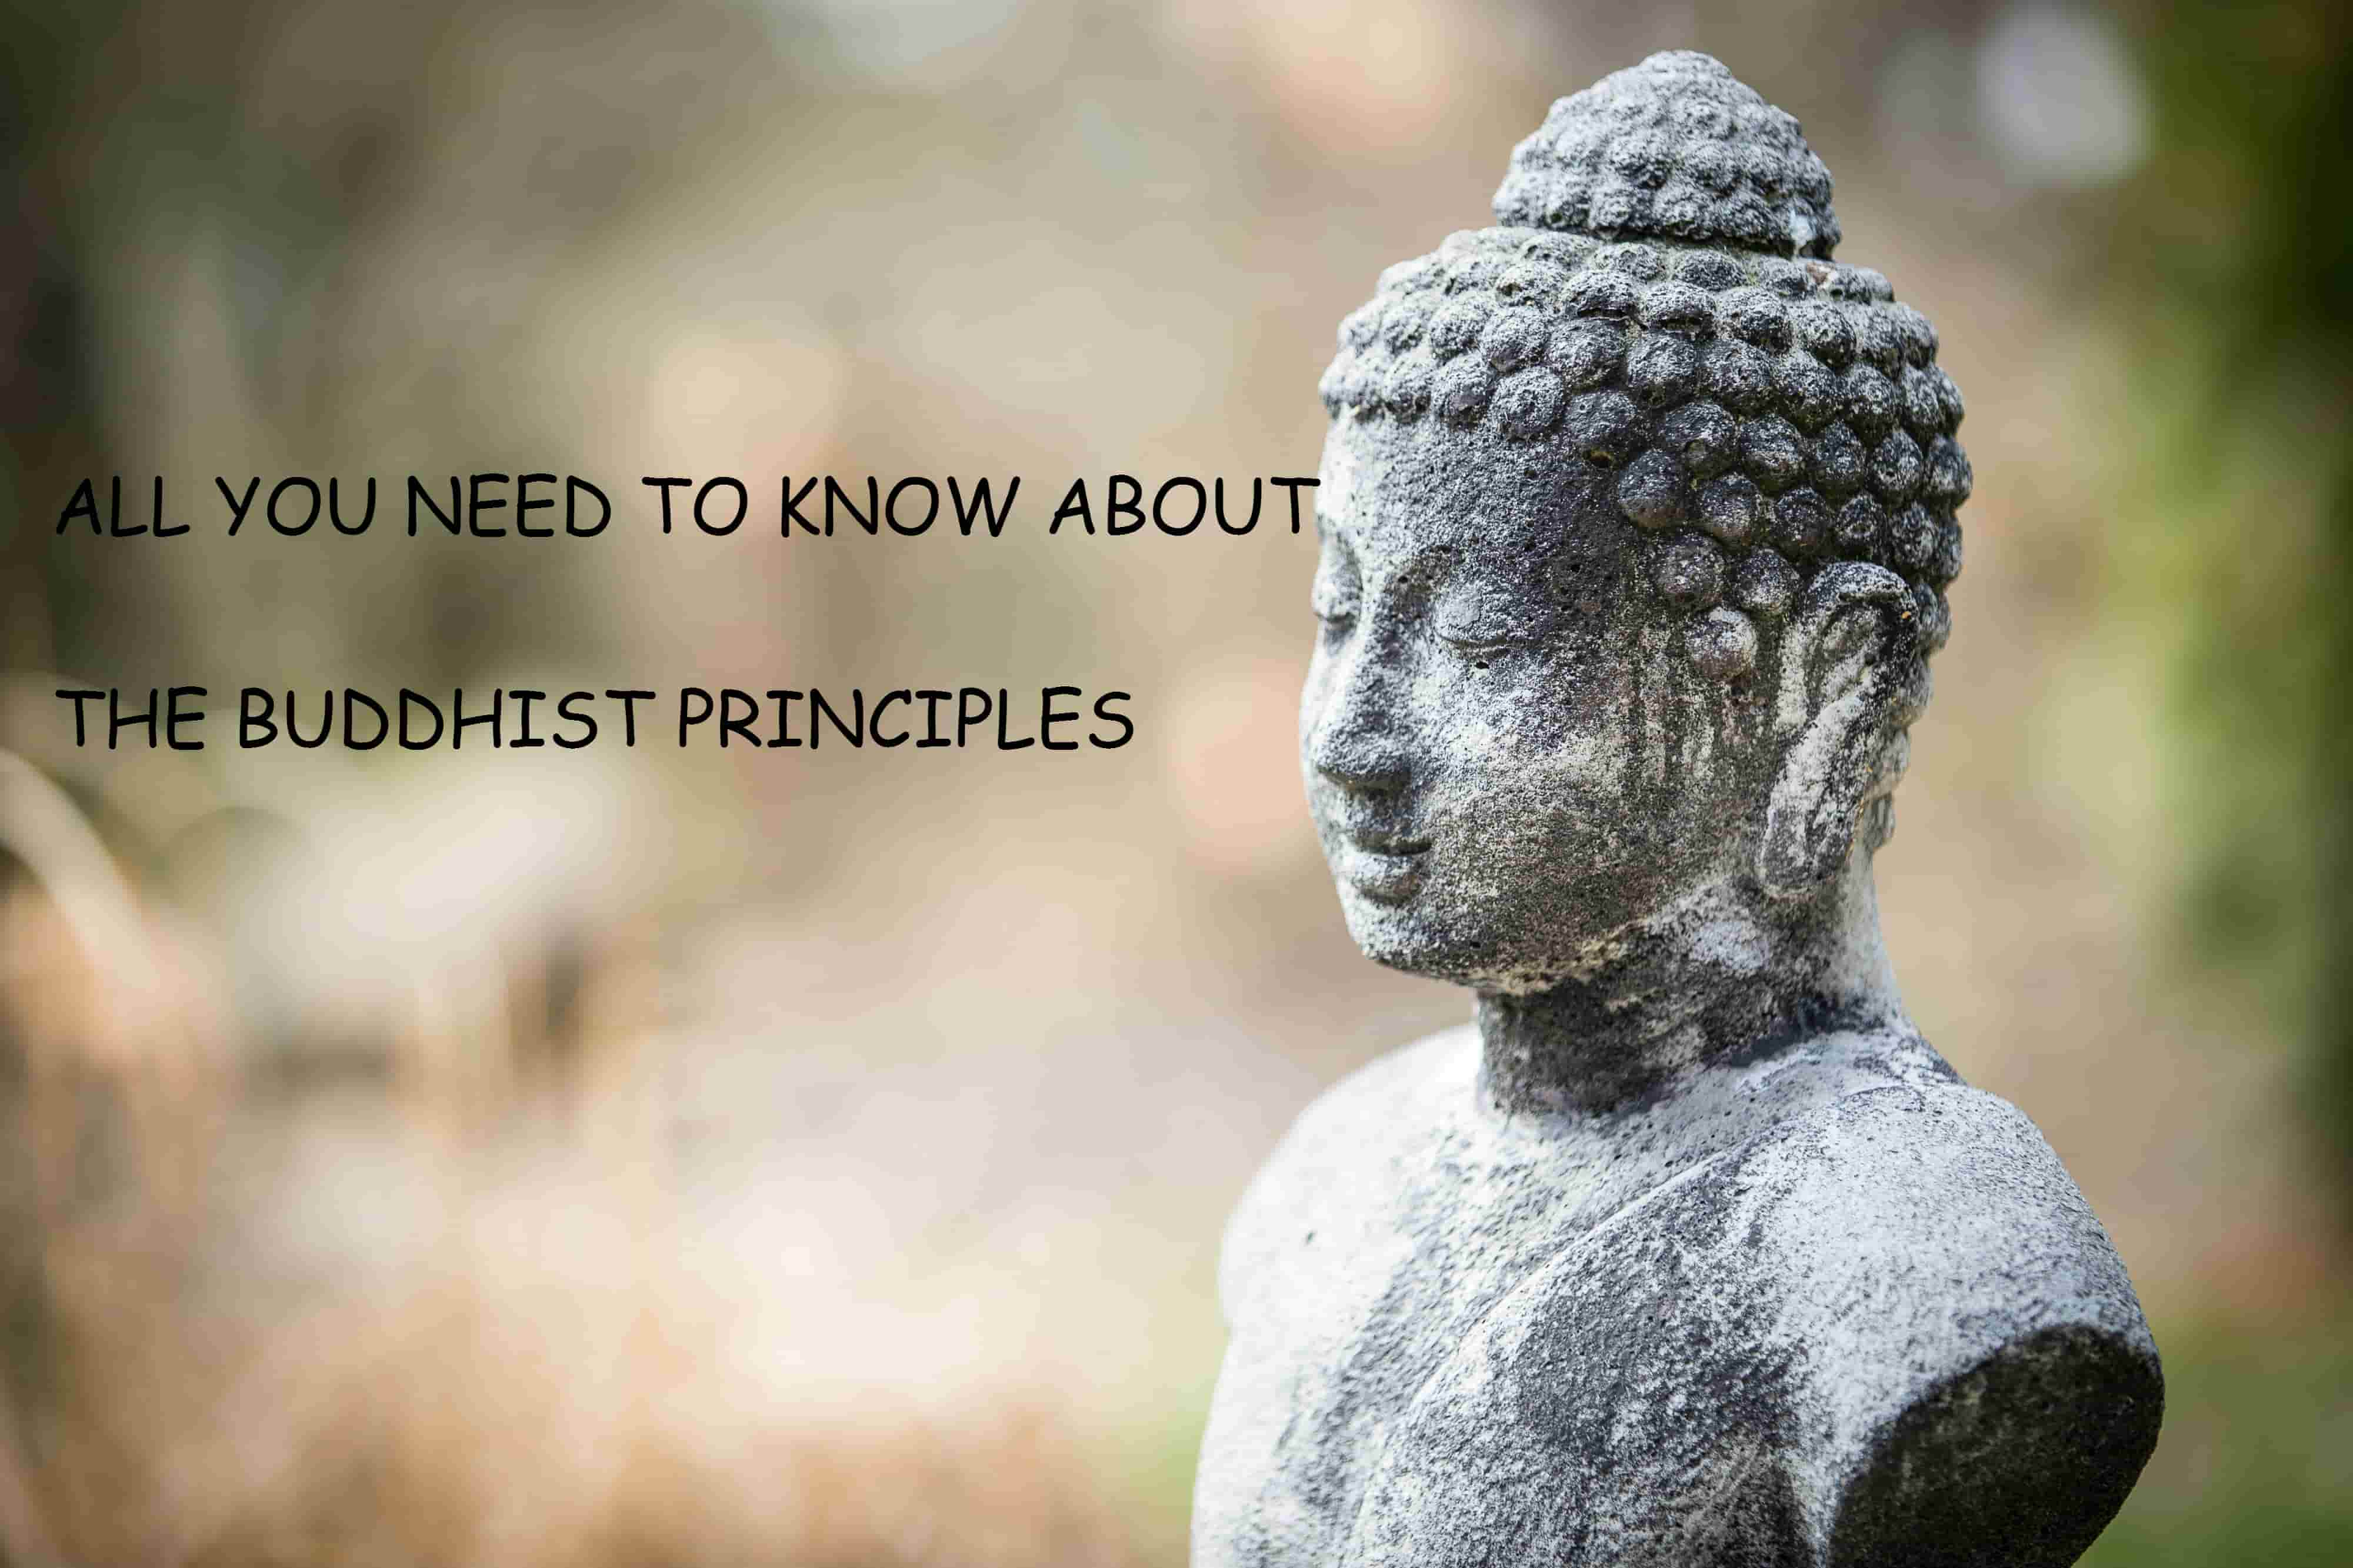 ALL YOU NEED TO KNOW ABOUT THE BUDDHIST PRINCIPLES